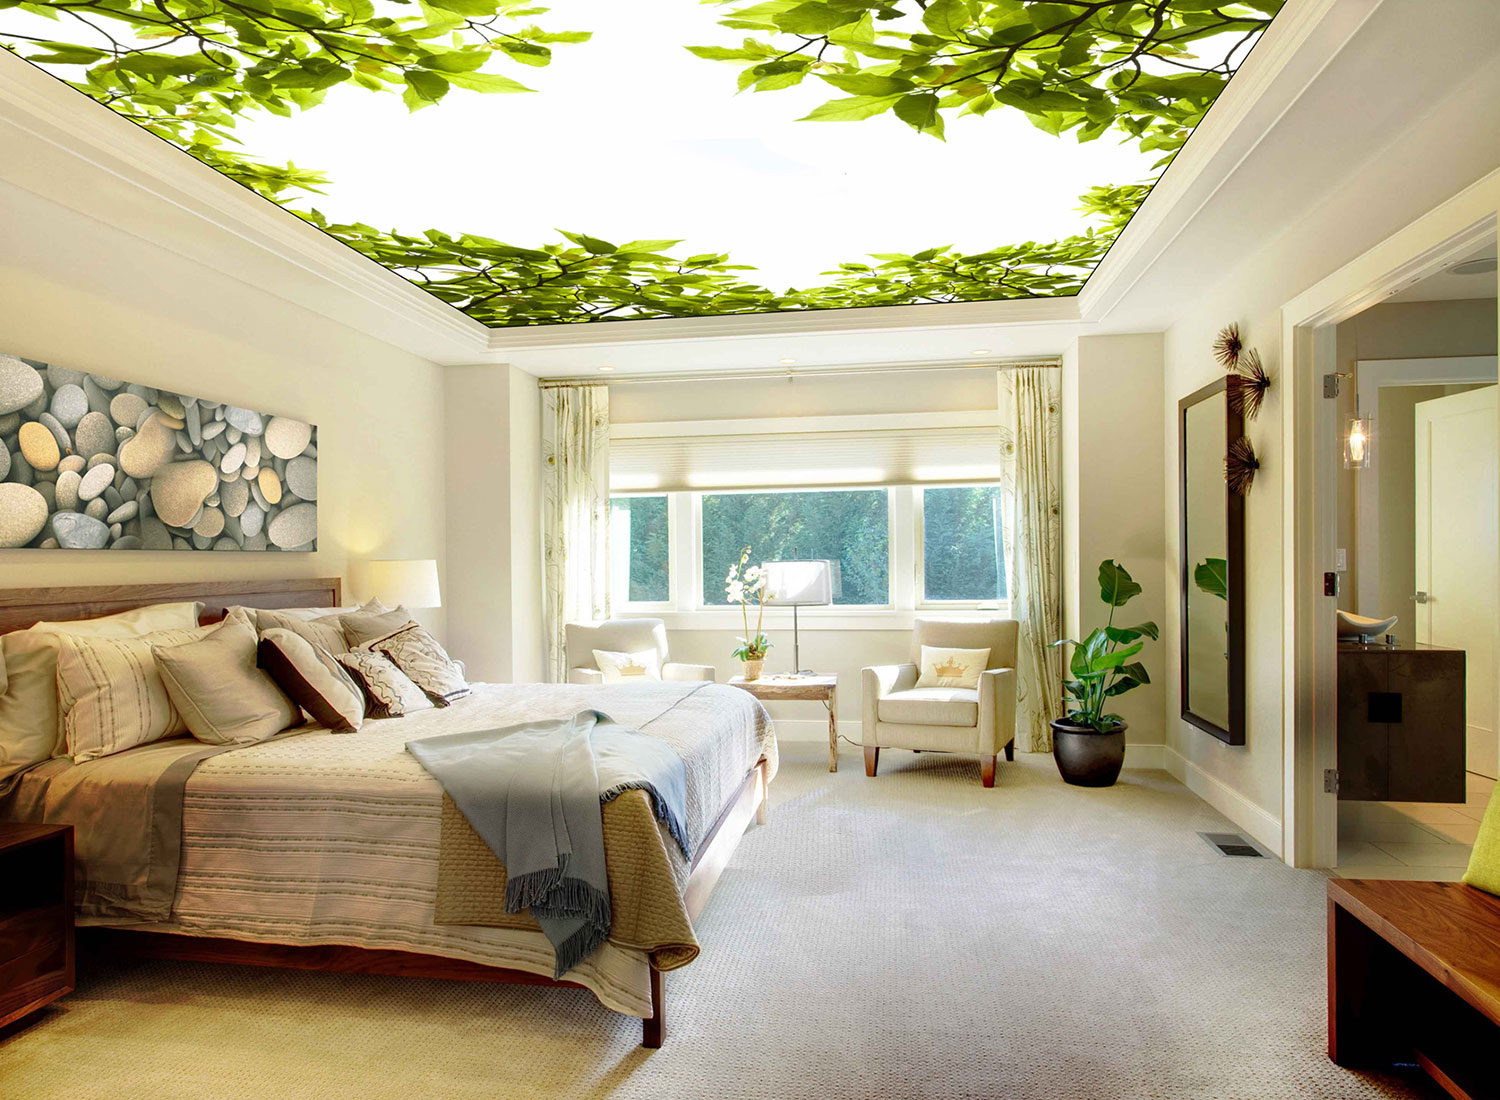 master bedroom - residence printed ceiling translucent with backlighting